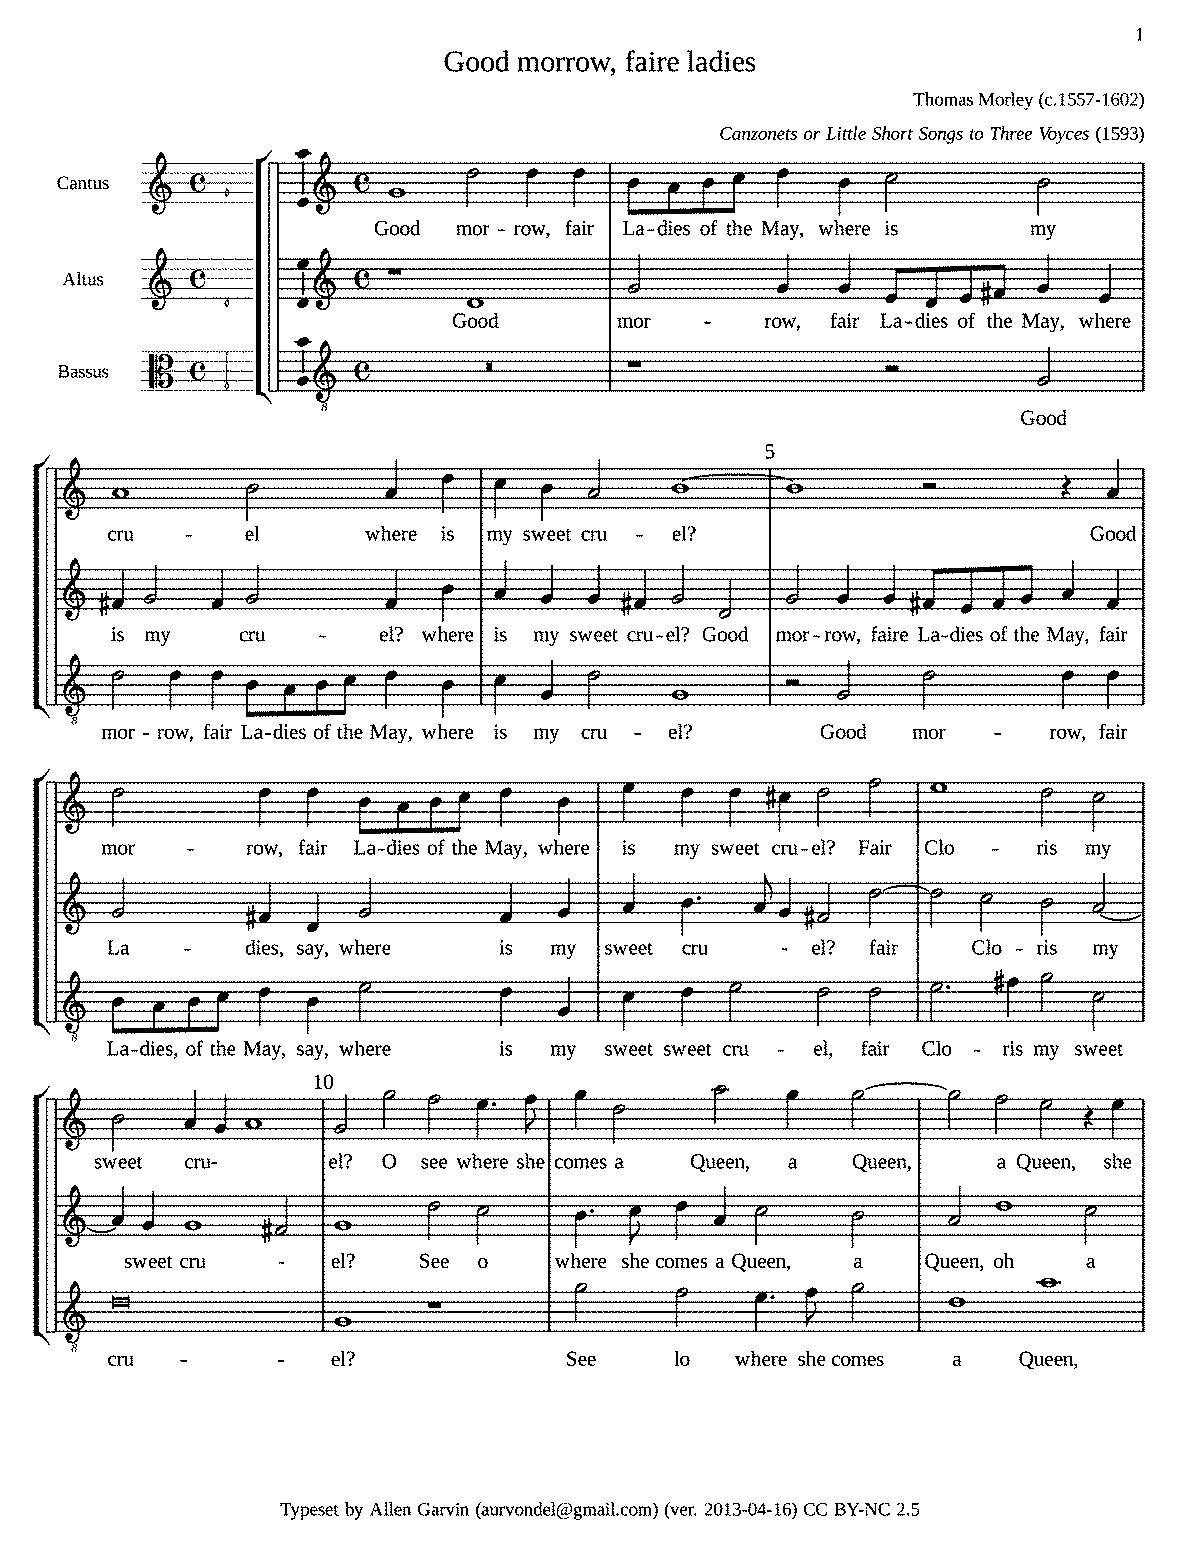 PMLP447294-06-goodmorrow fair ladies---0-score.pdf